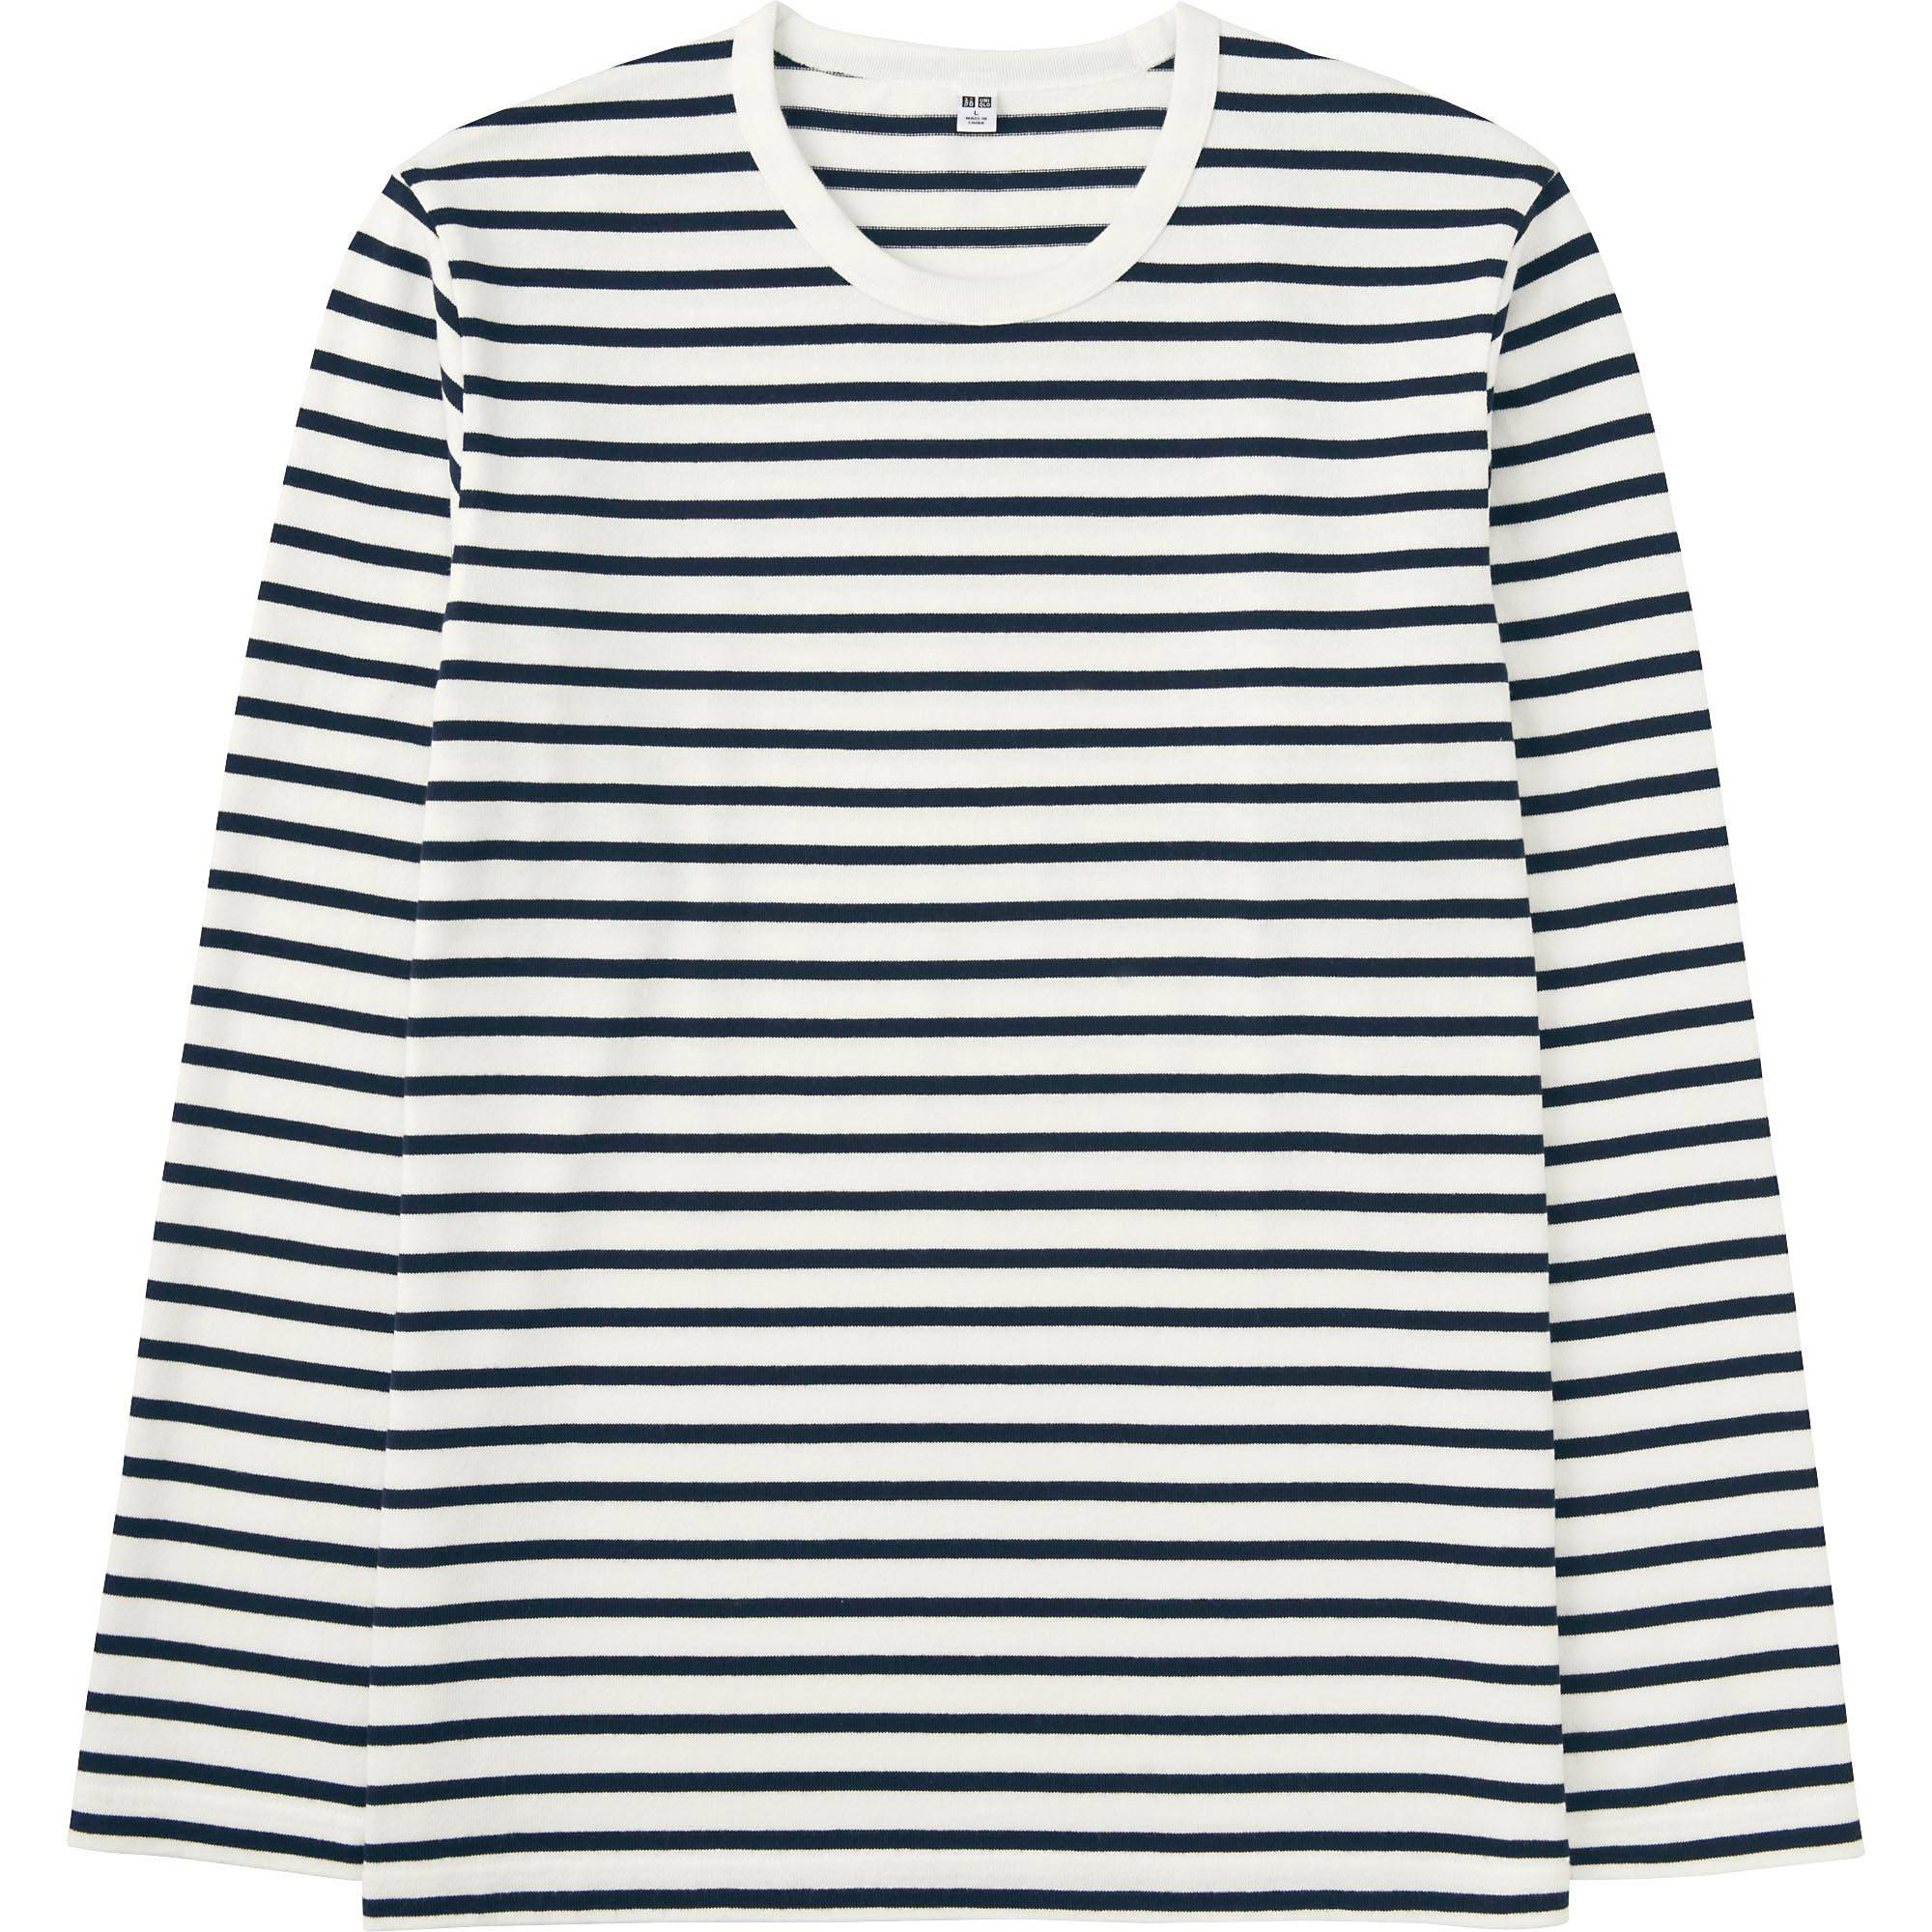 MEN WASHED STRIPED CREWNECK LONG SLEEVE T-SHIRT | UNIQLO US